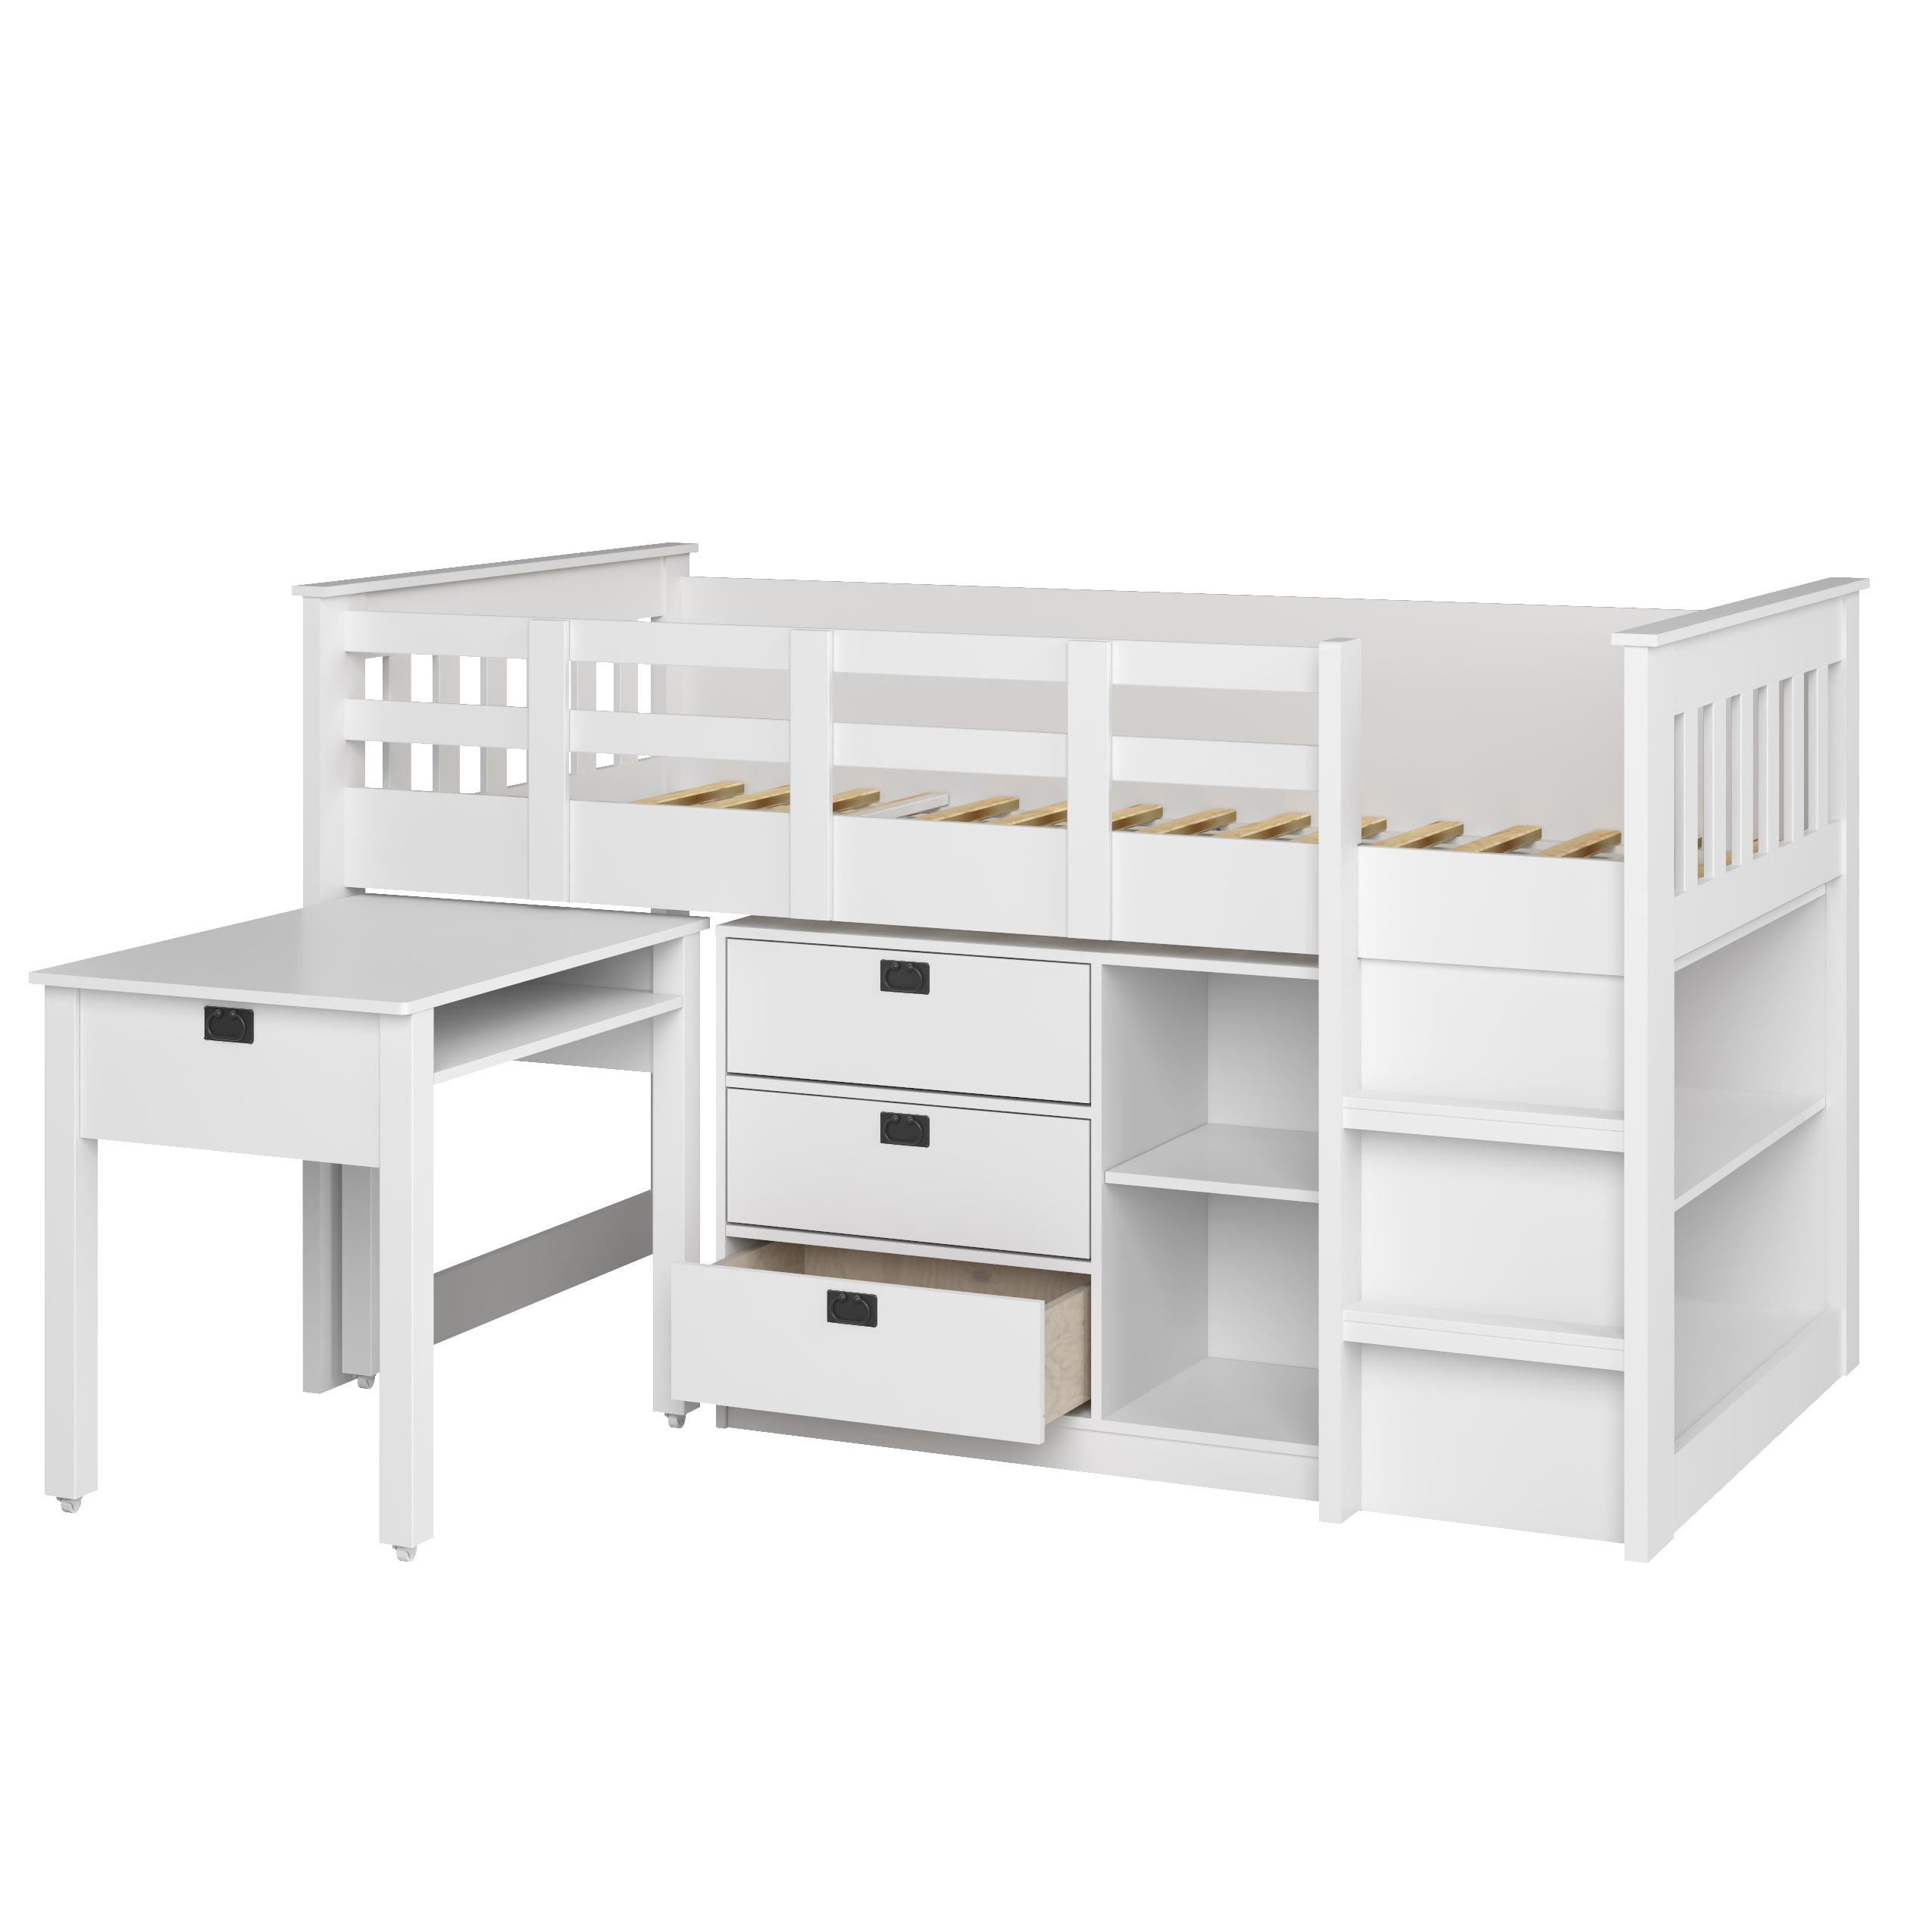 Corliving Bmg 370 B Madison Loft Bed With Desk And Storage Single Twin Rich